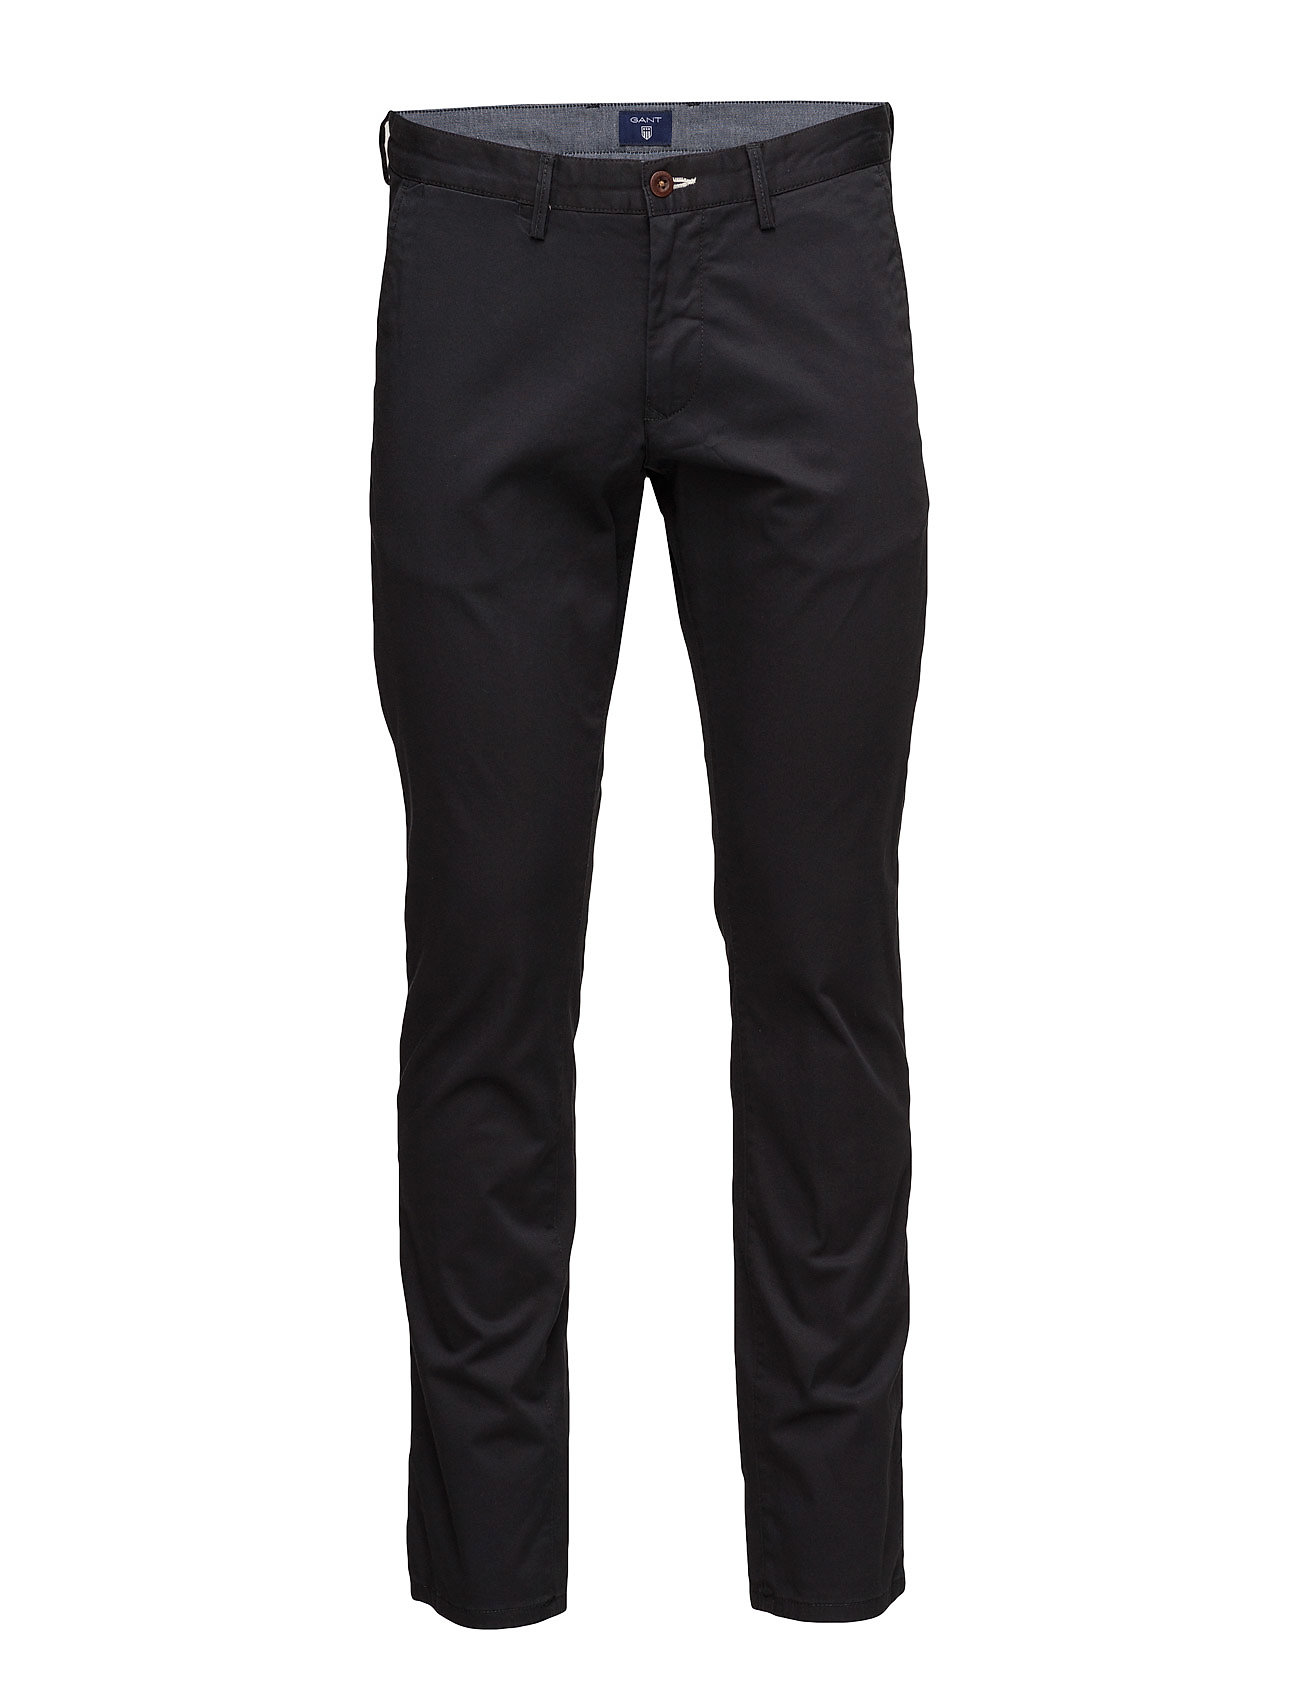 Gant SLIM TWILL CHINOS - BLACK